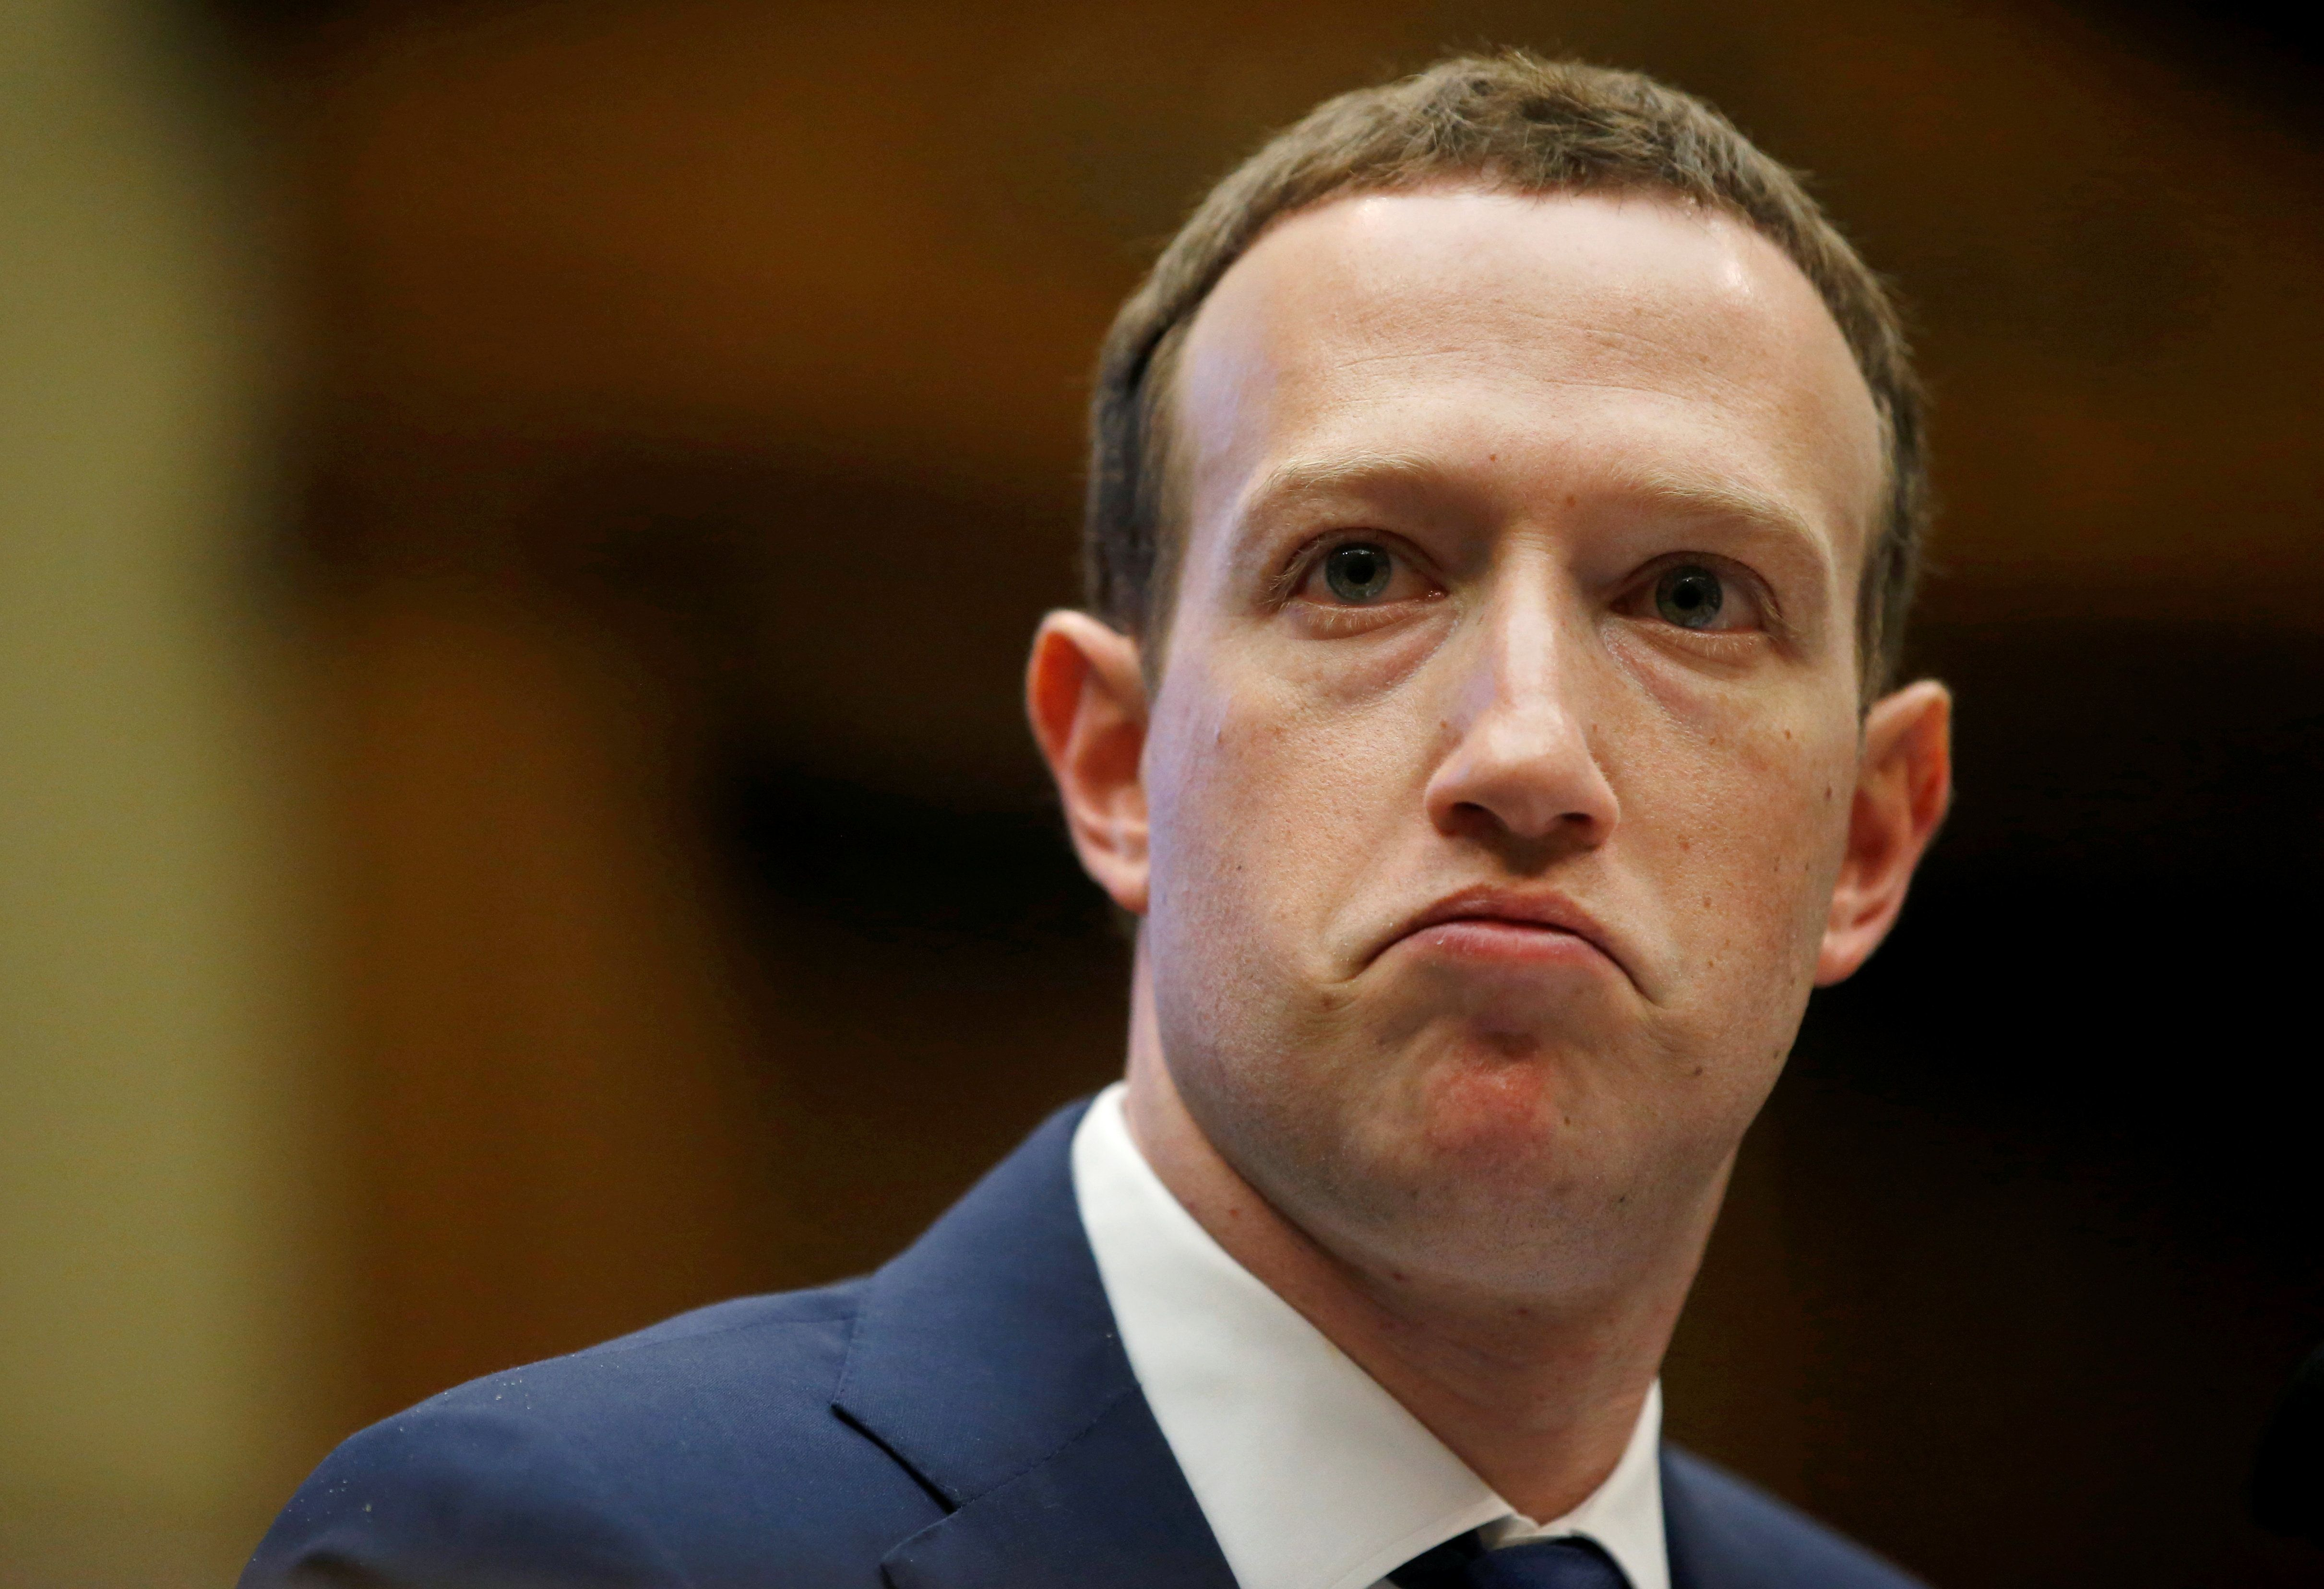 """""""We do not allow hate groups on Facebook, overall,"""" according to Facebook CEO Mark Zuckerberg."""